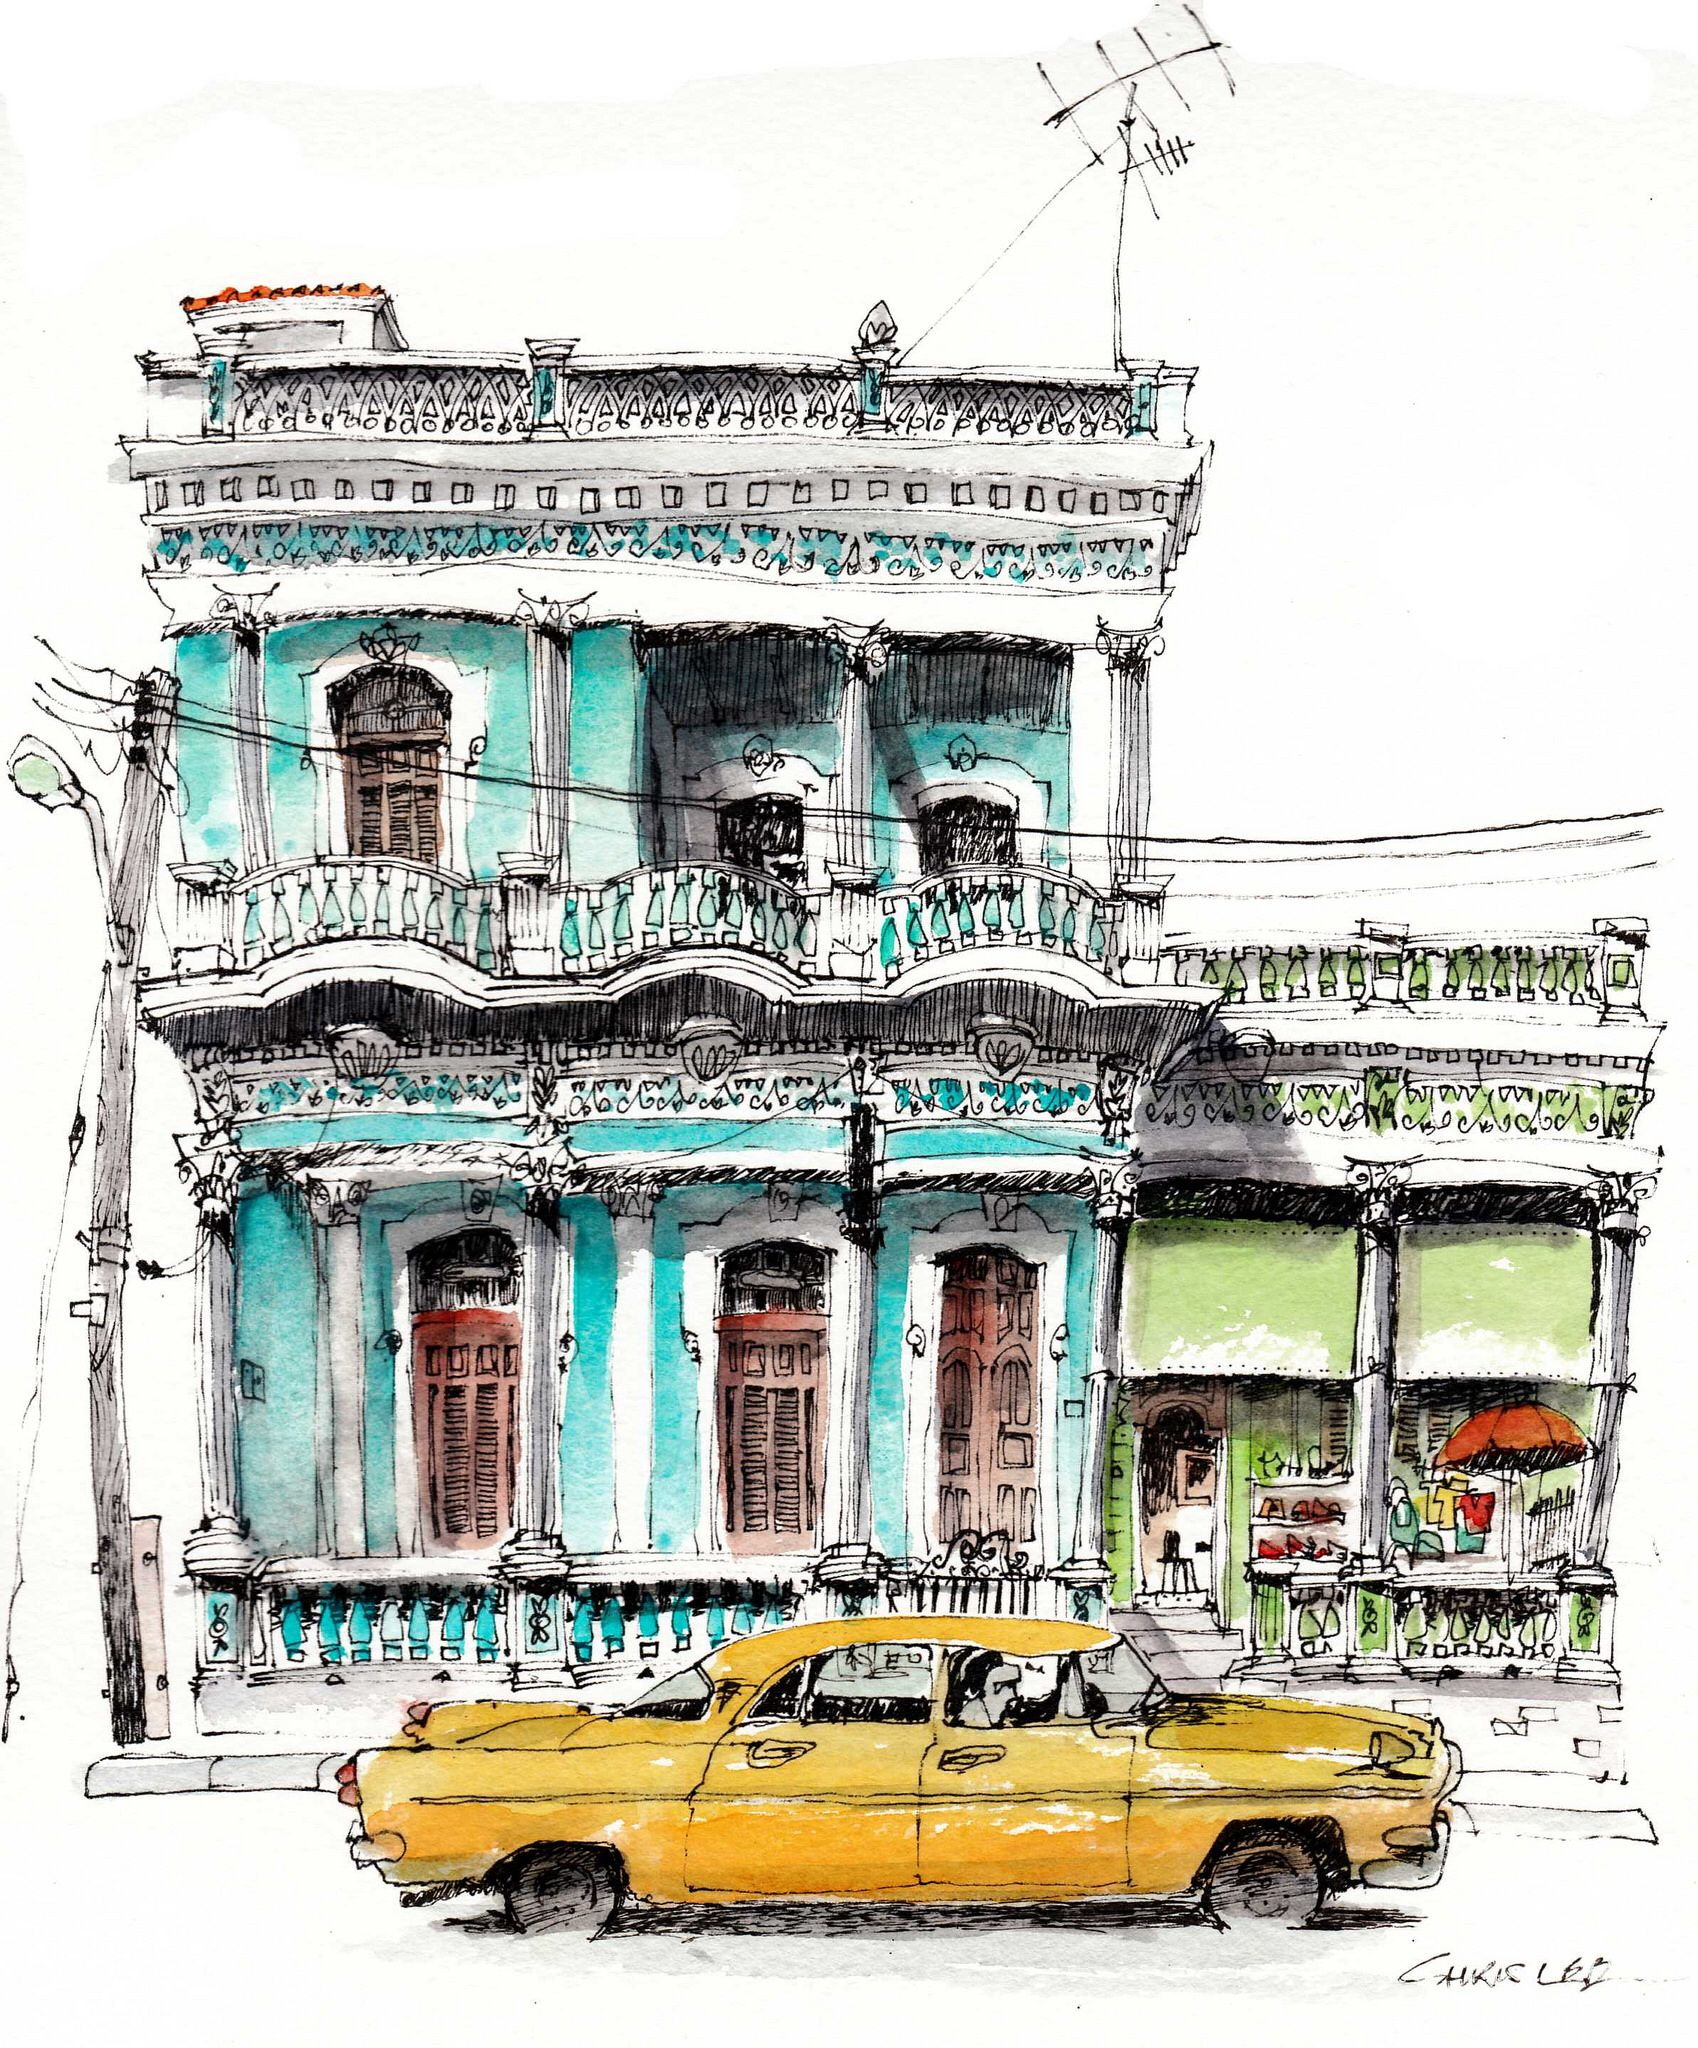 Architectual Illustrations Cienfuegos Cuba By Chris Lee Urban Sketchers Pinterest